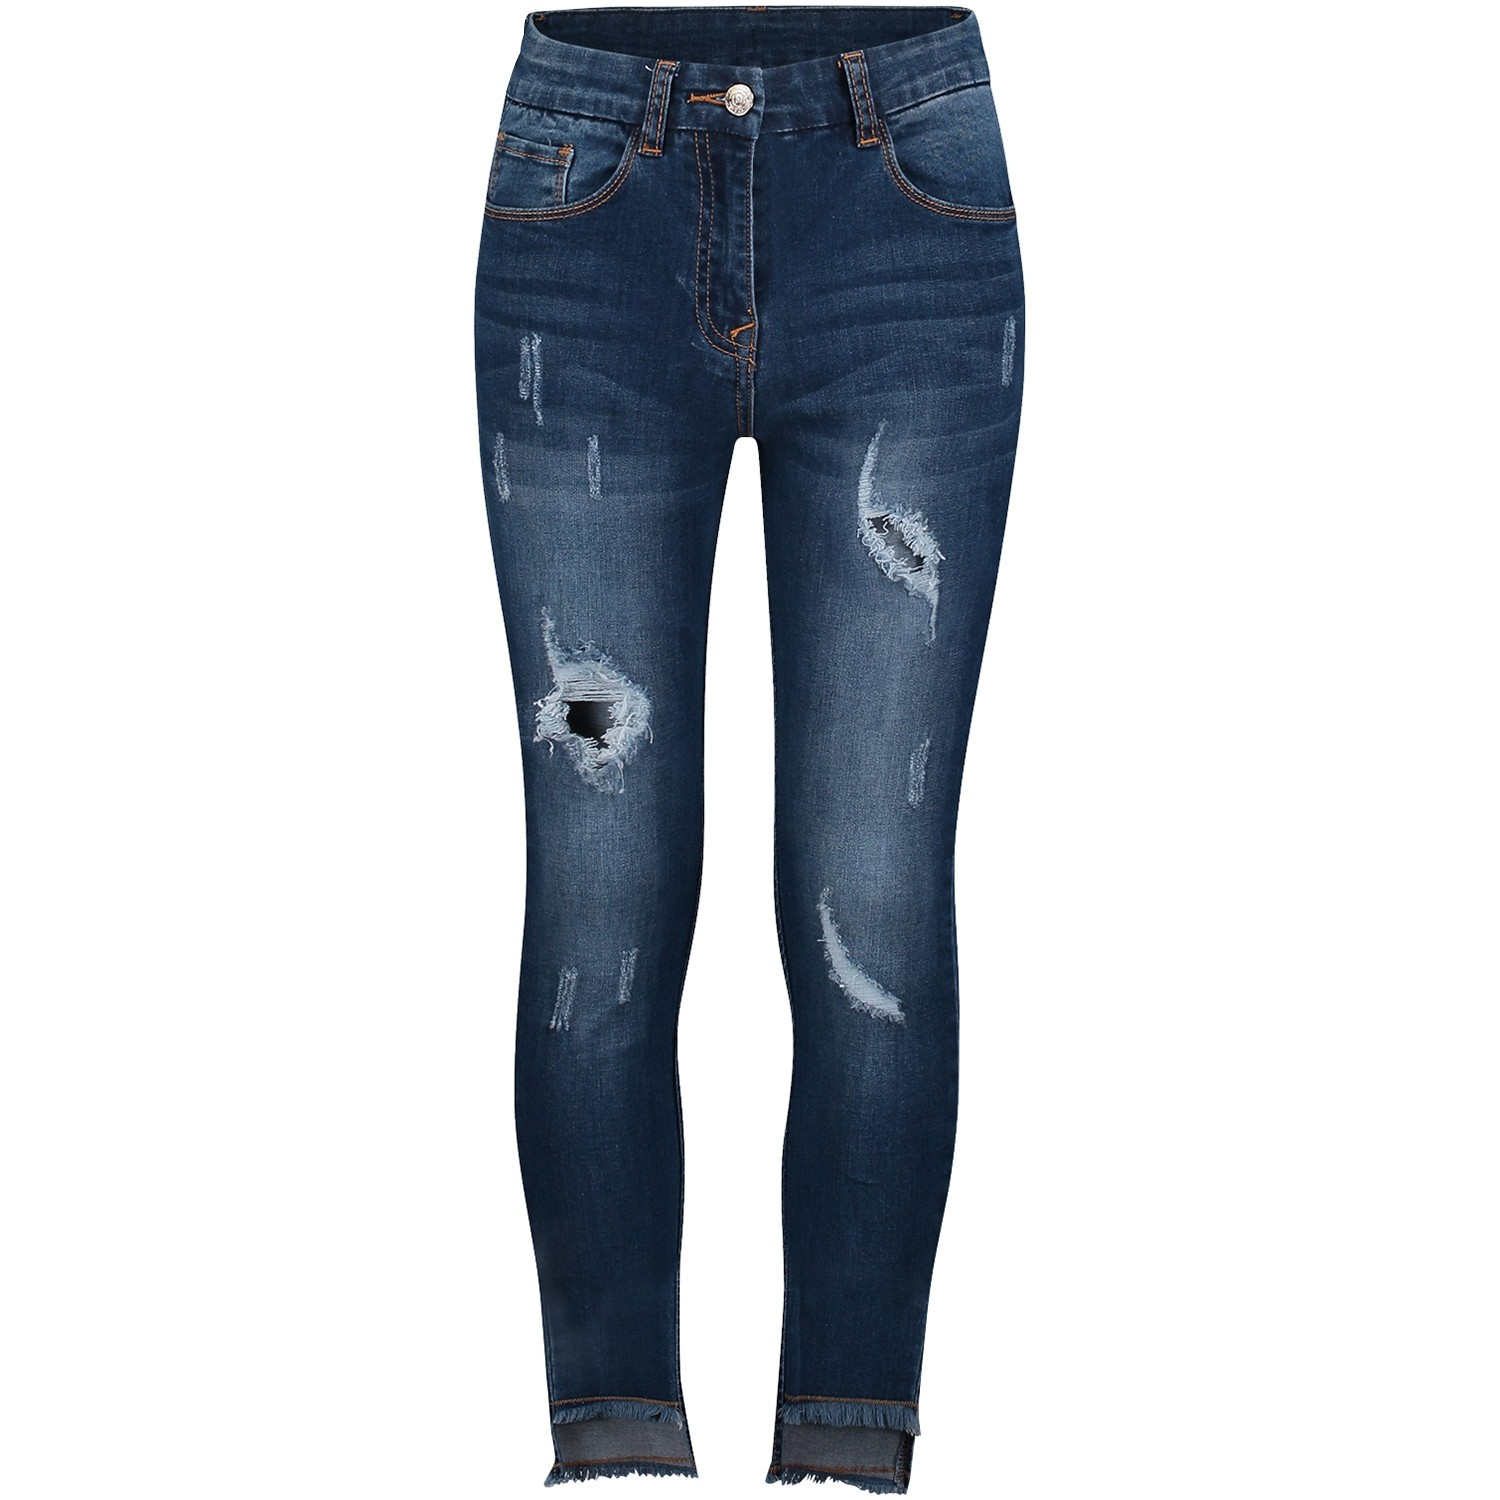 Picture of MonnaLisa 171400 kids pants jeans